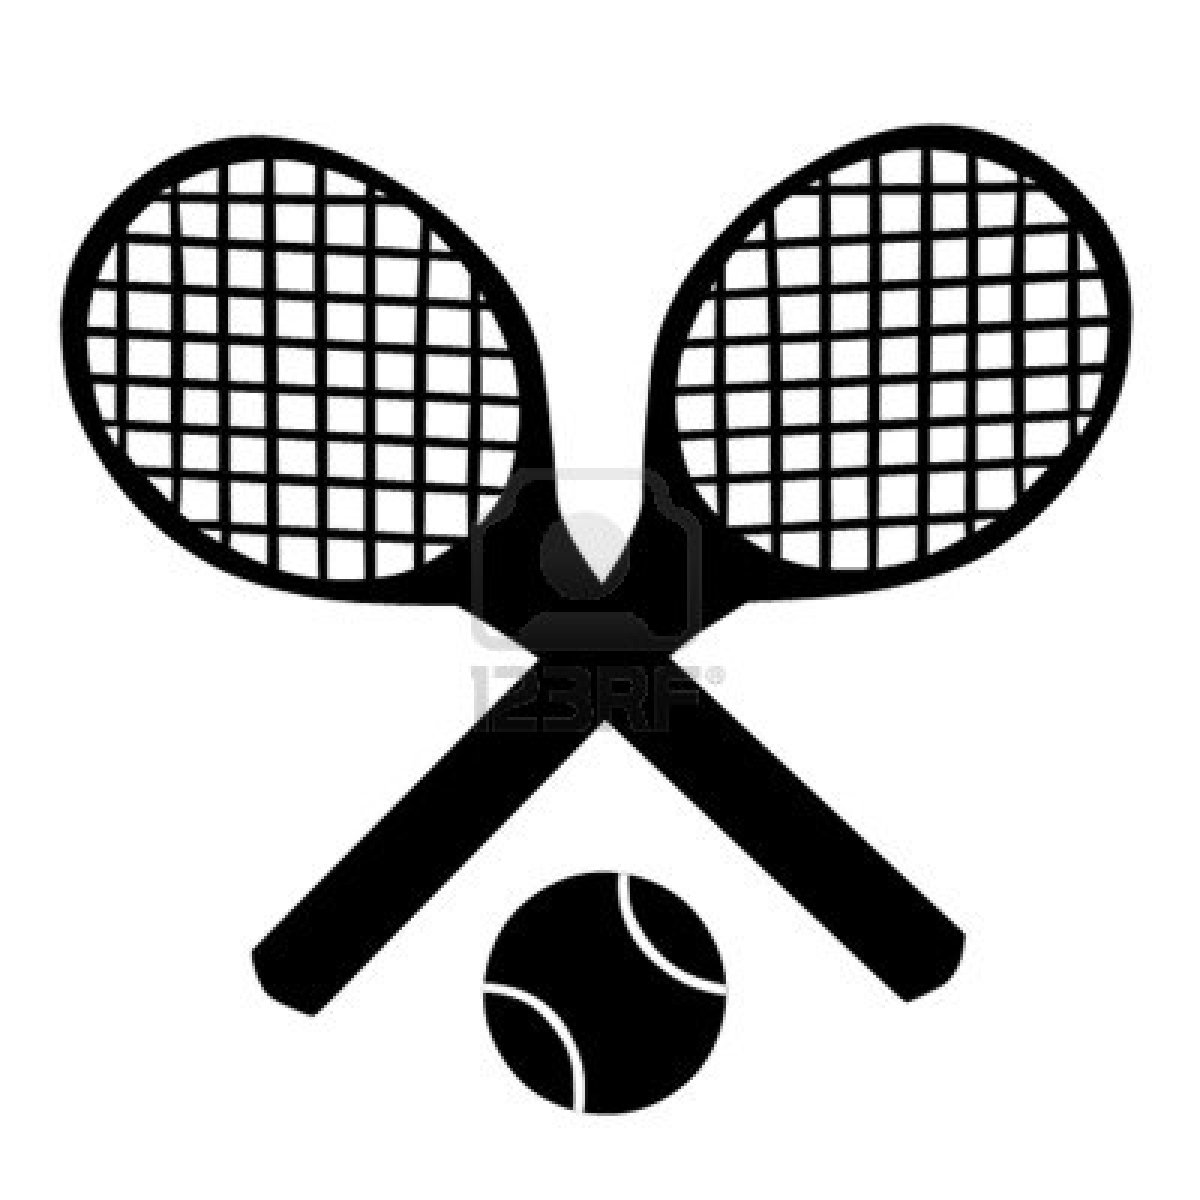 Paddle Ball Rackets Clip Art.